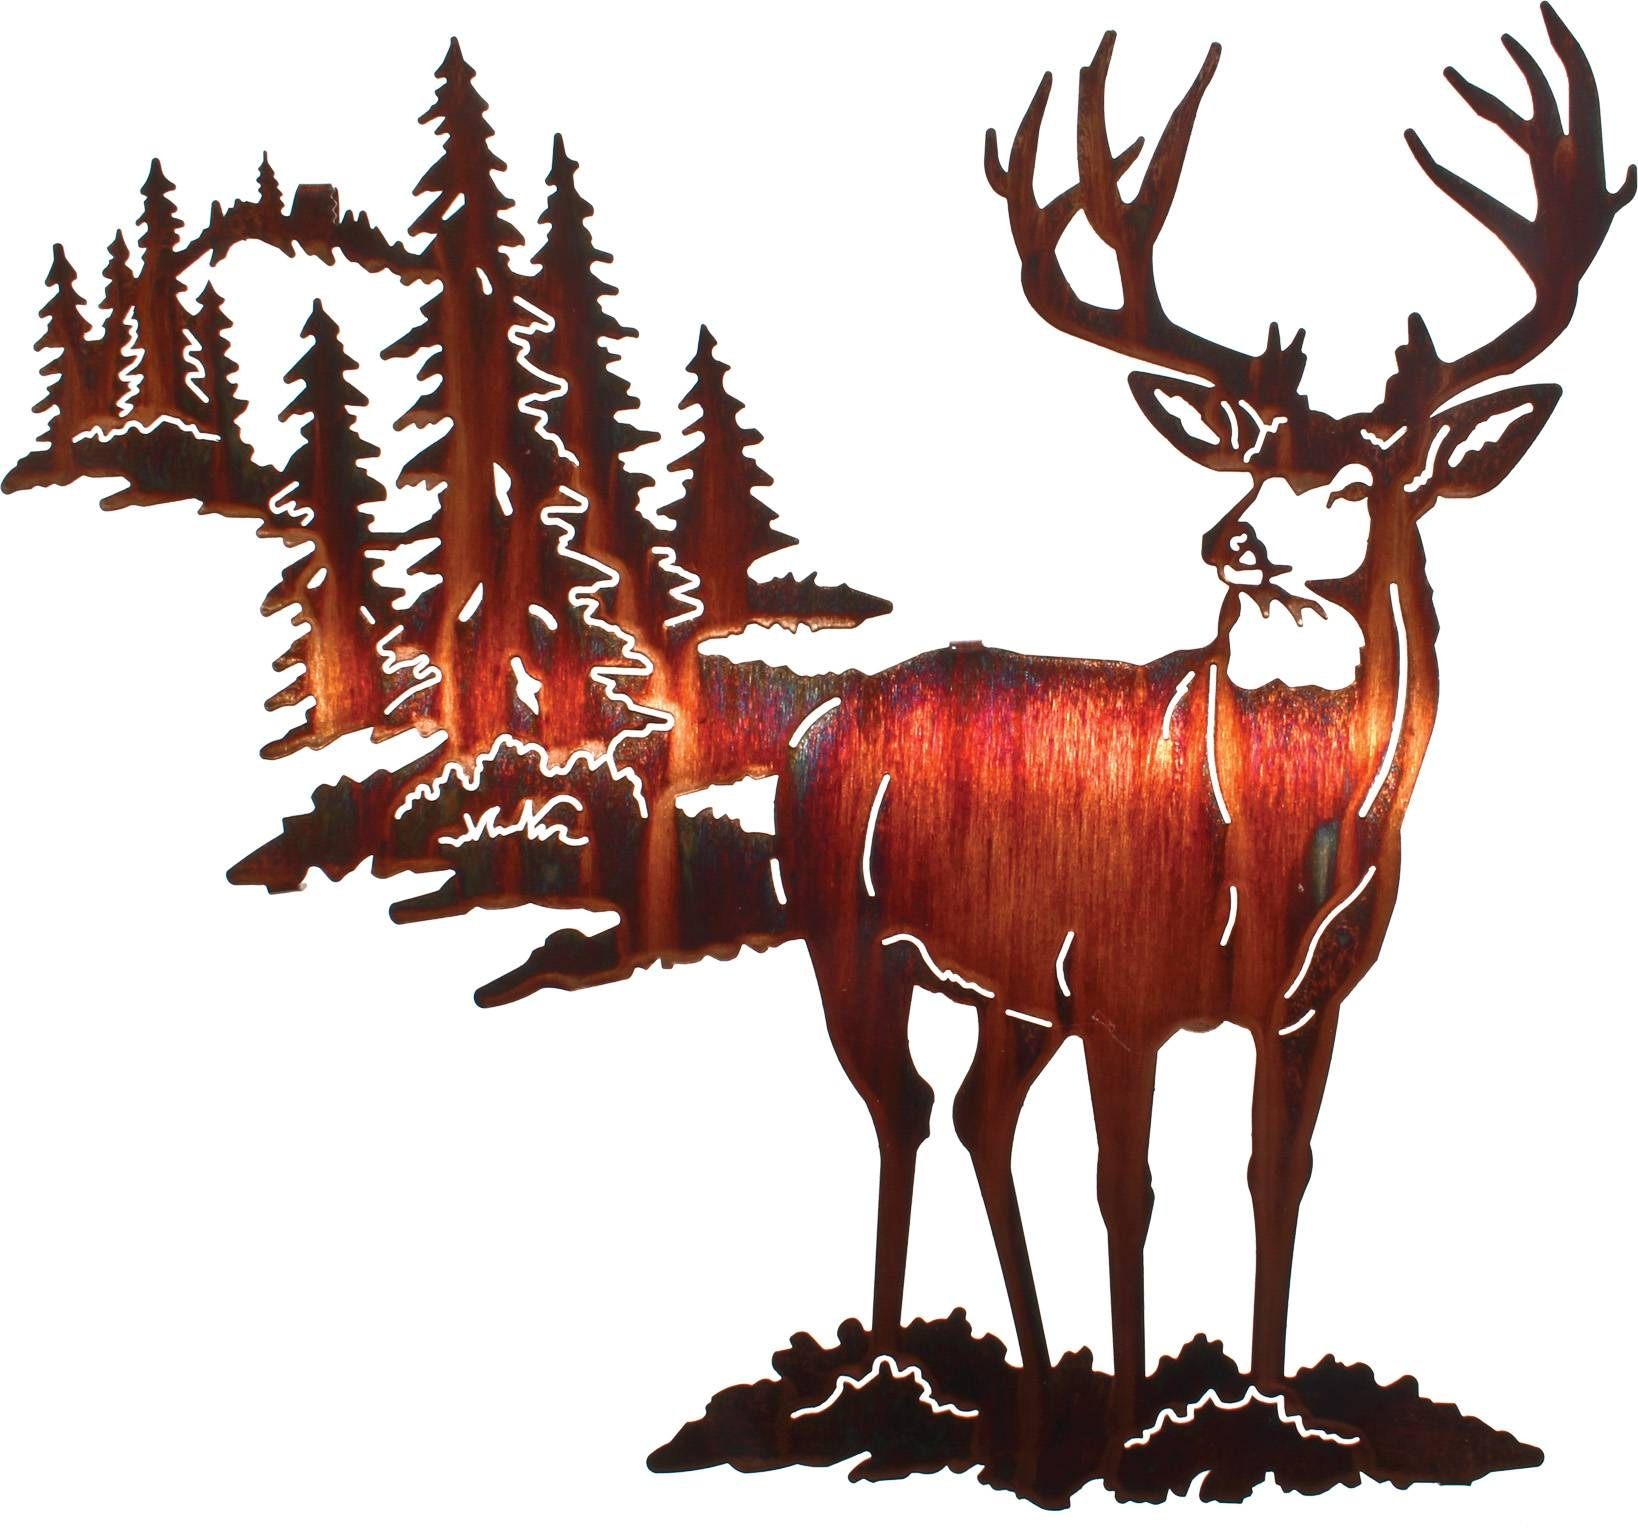 Deer Wall Art, Deer Wall Hangings, Metal Wall Sculptures Regarding Most Popular Laser Cut Metal Wall Art (View 3 of 20)